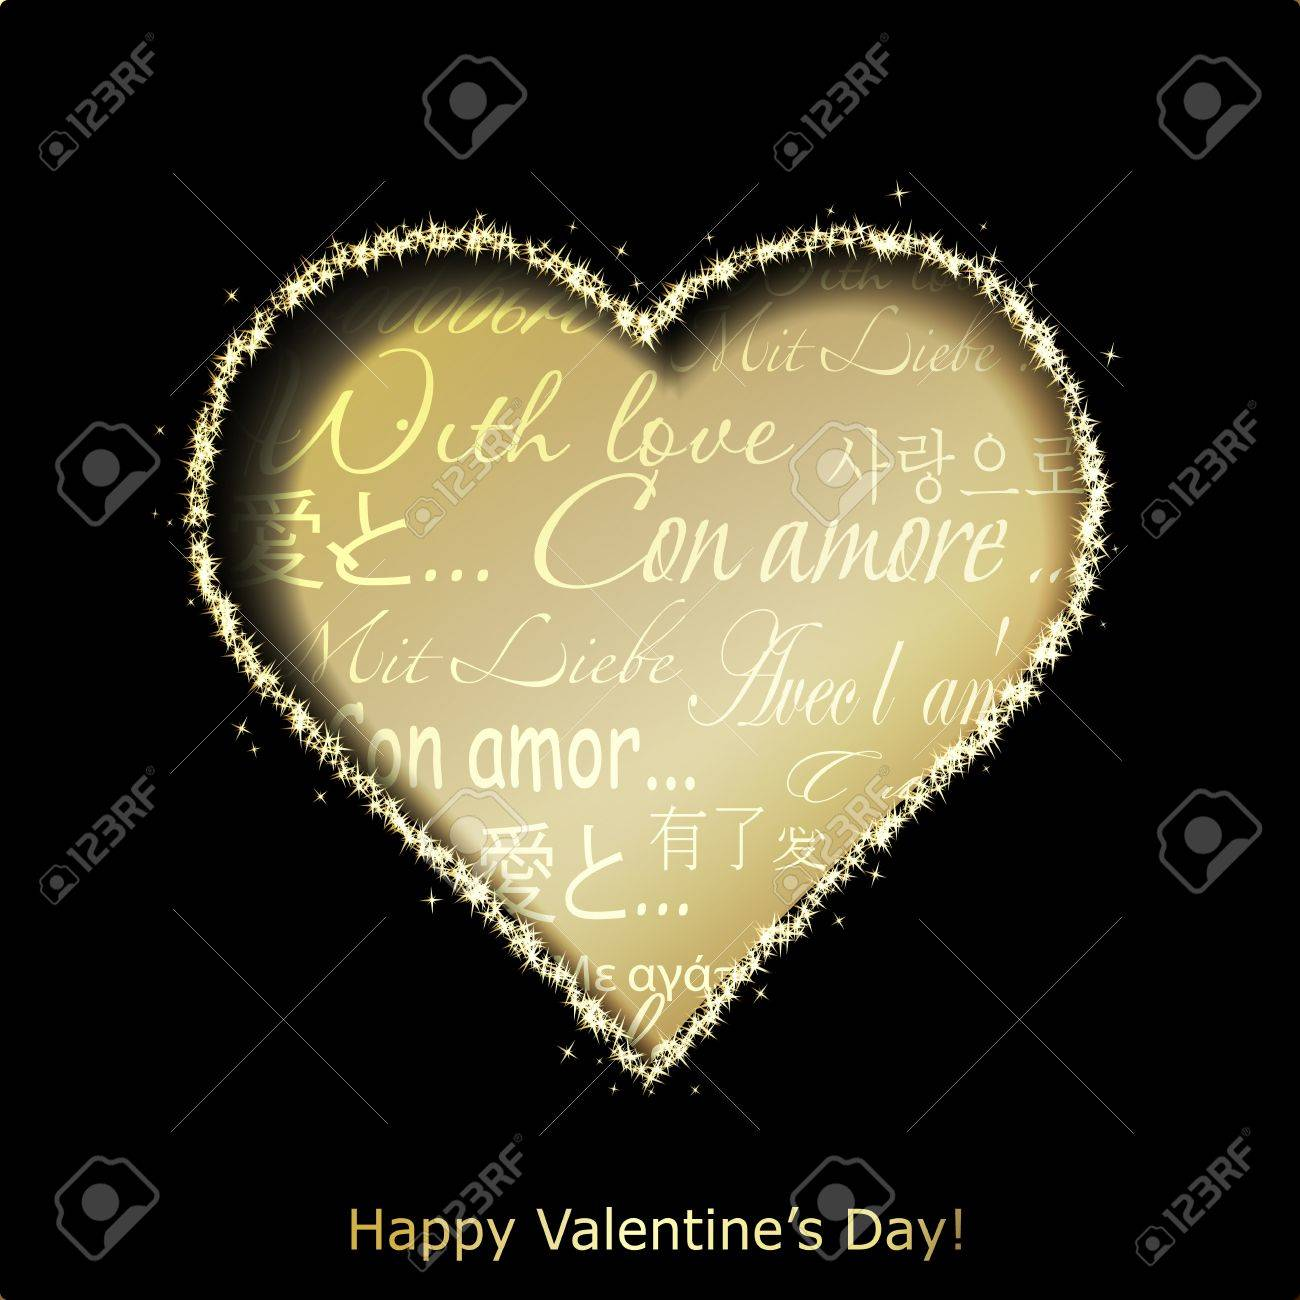 Abstract golden heart cutted from black paper background  Valentines day greeting card  illustration Stock Vector - 17560335